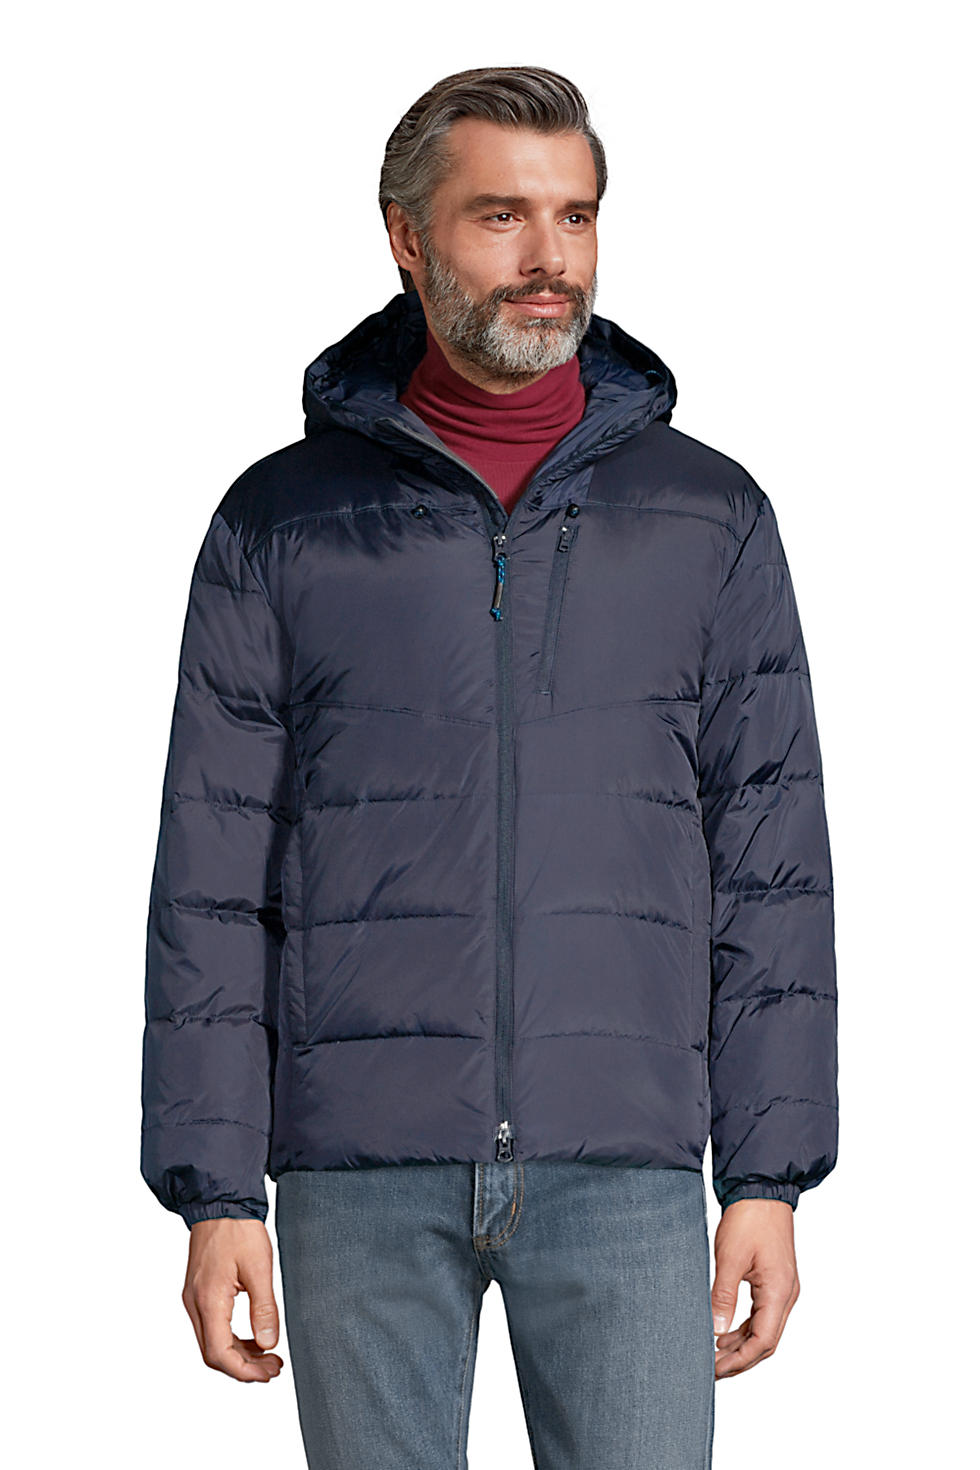 Lands End Men's Expedition Winter Down Puffer Jacket